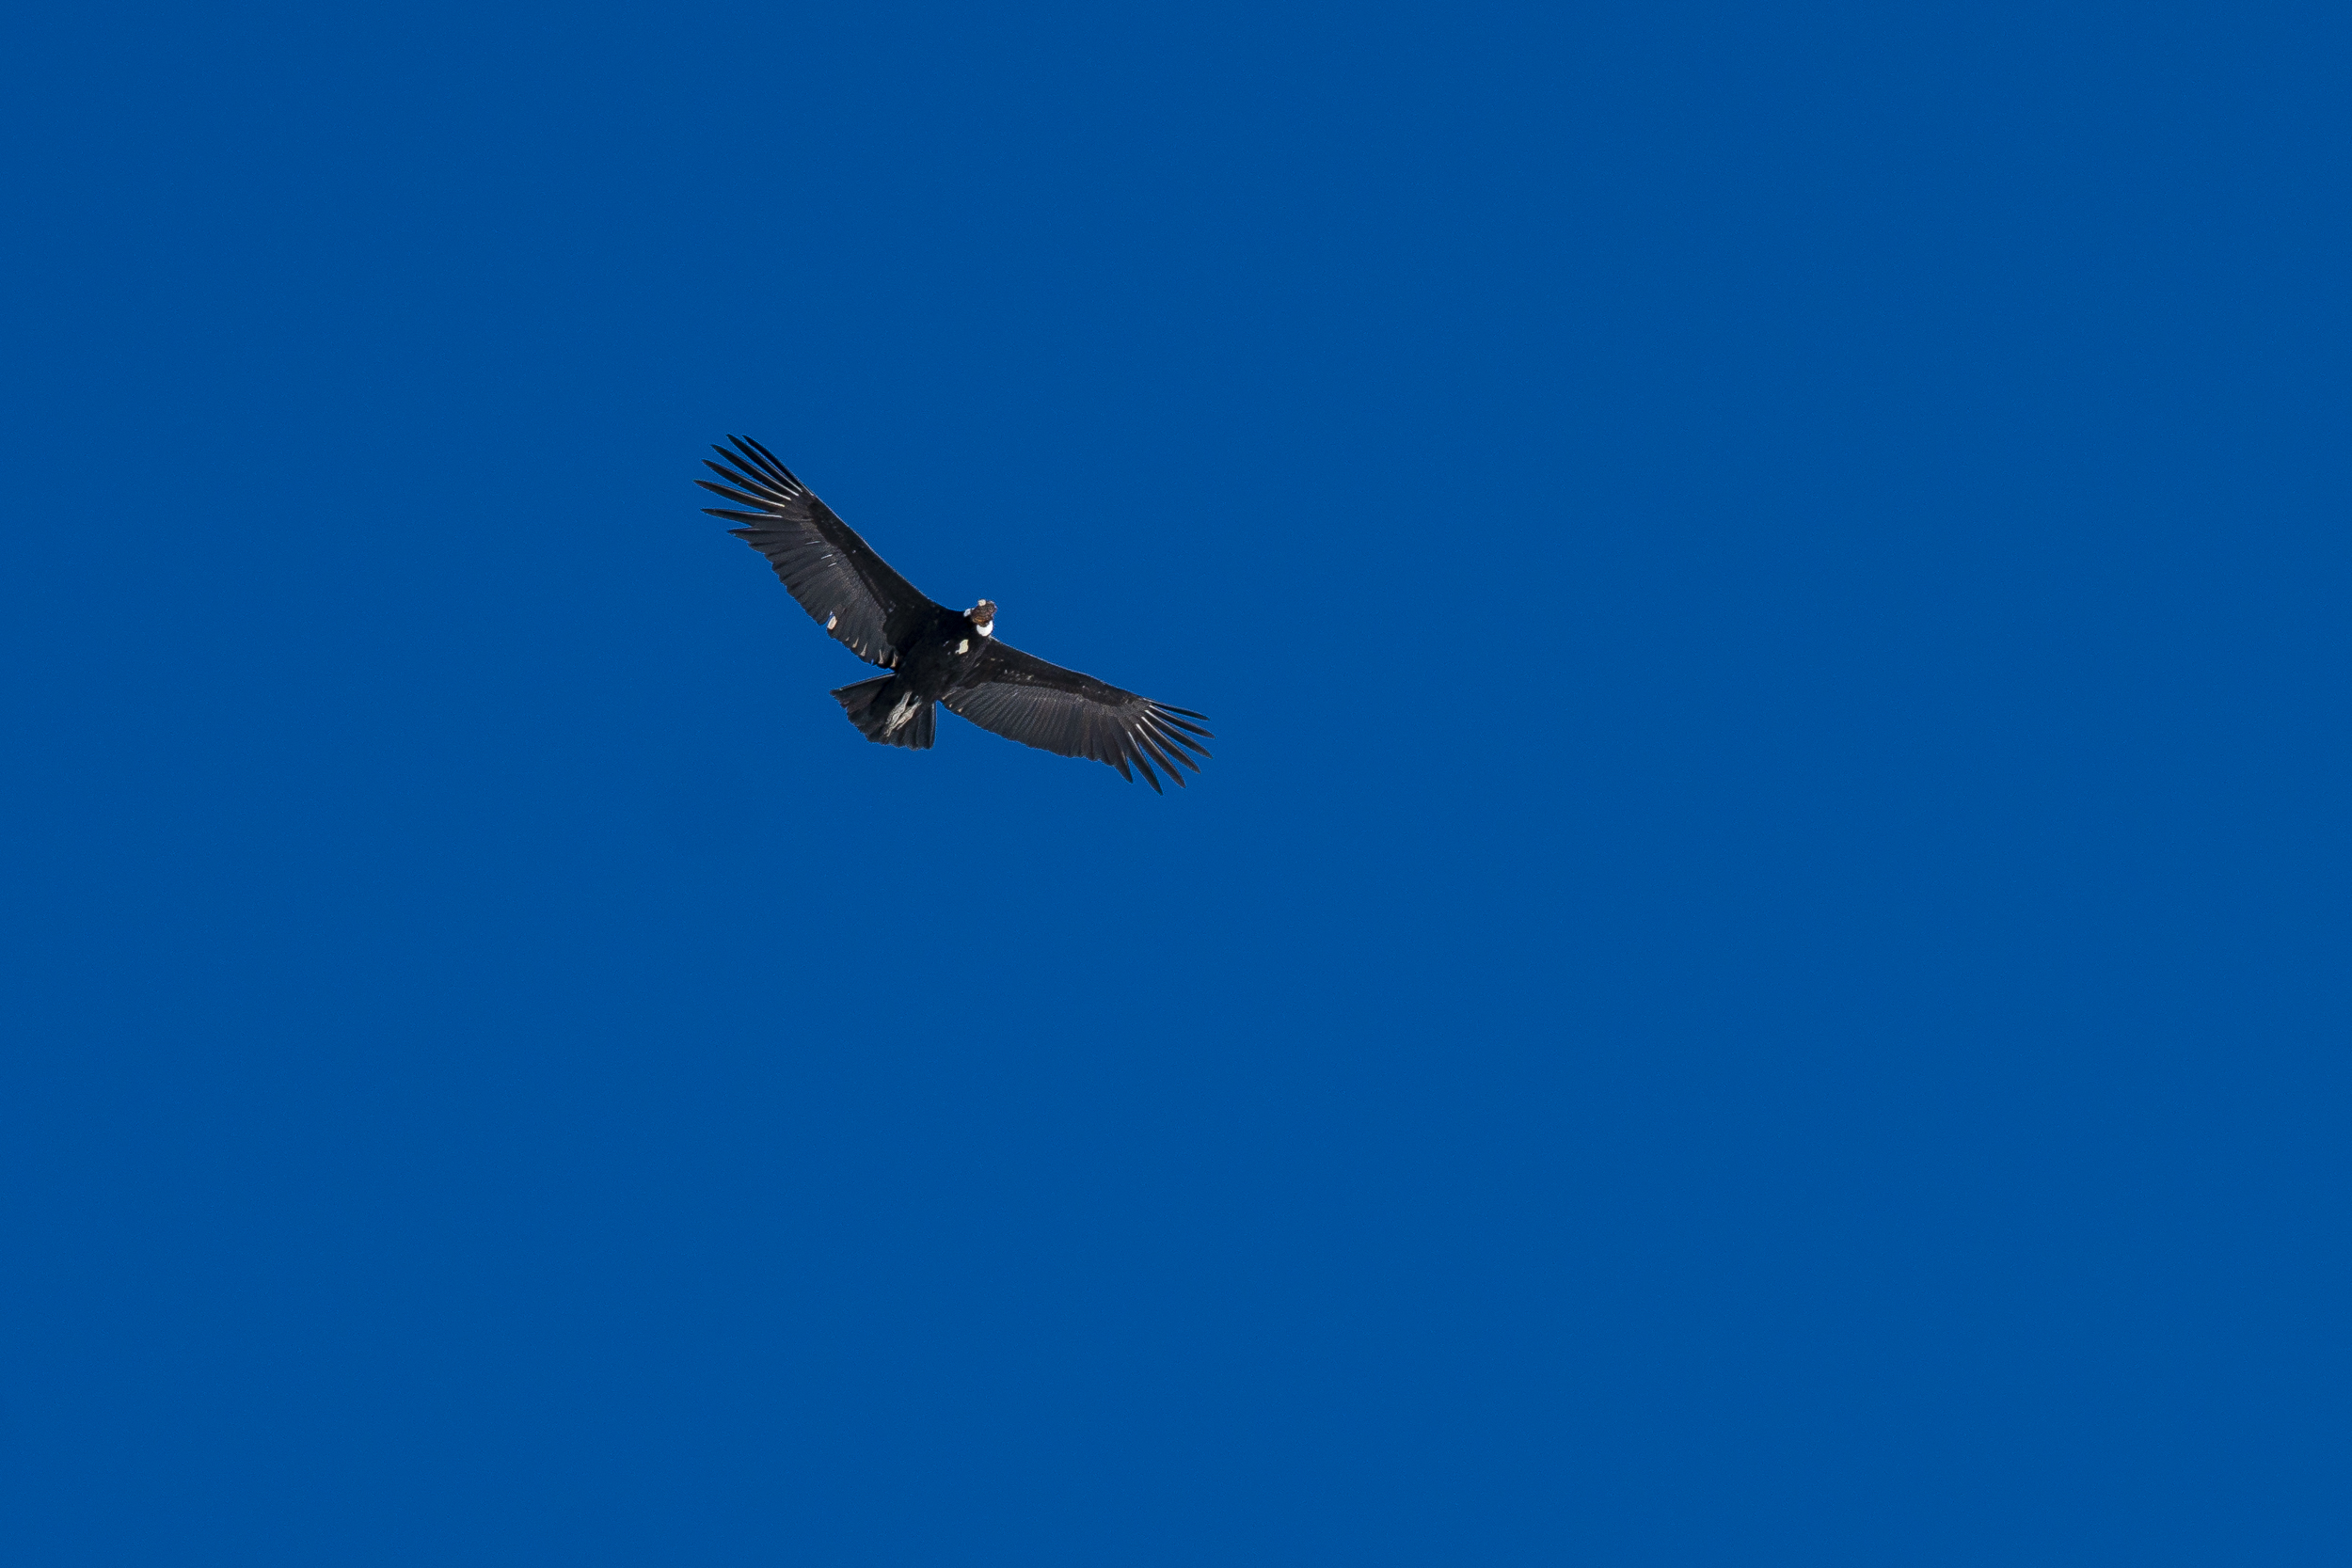 Condor doing a fly by